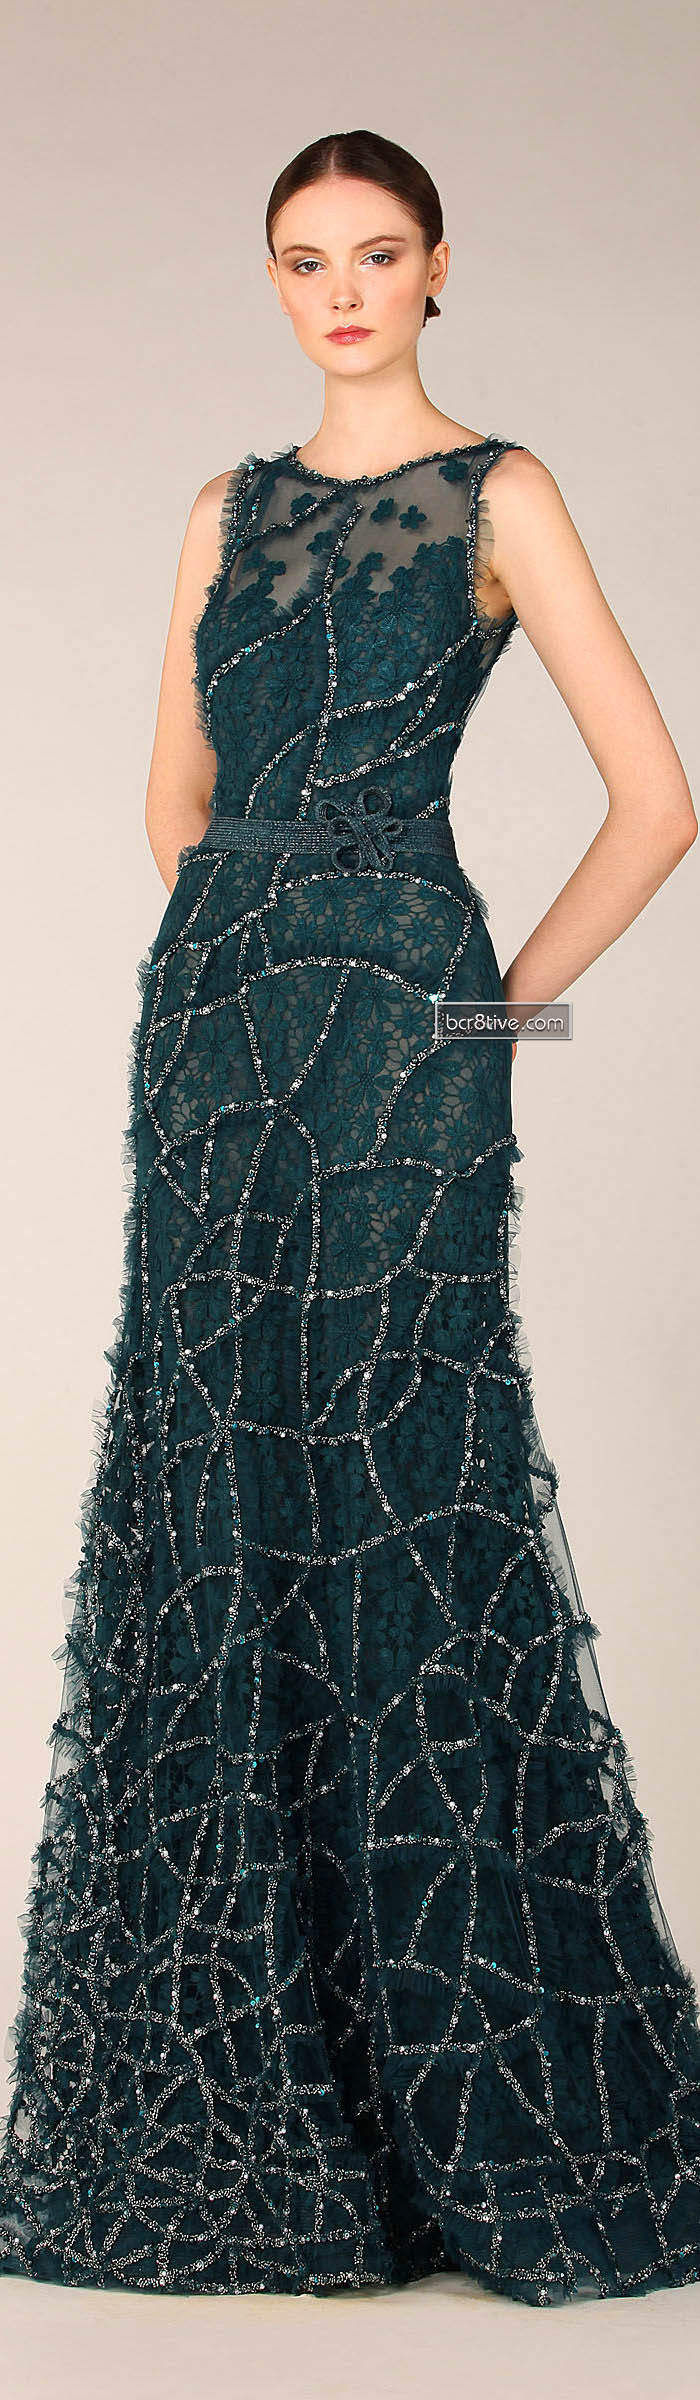 Tony Ward Fall Winter 2013-14 Ready to Wear